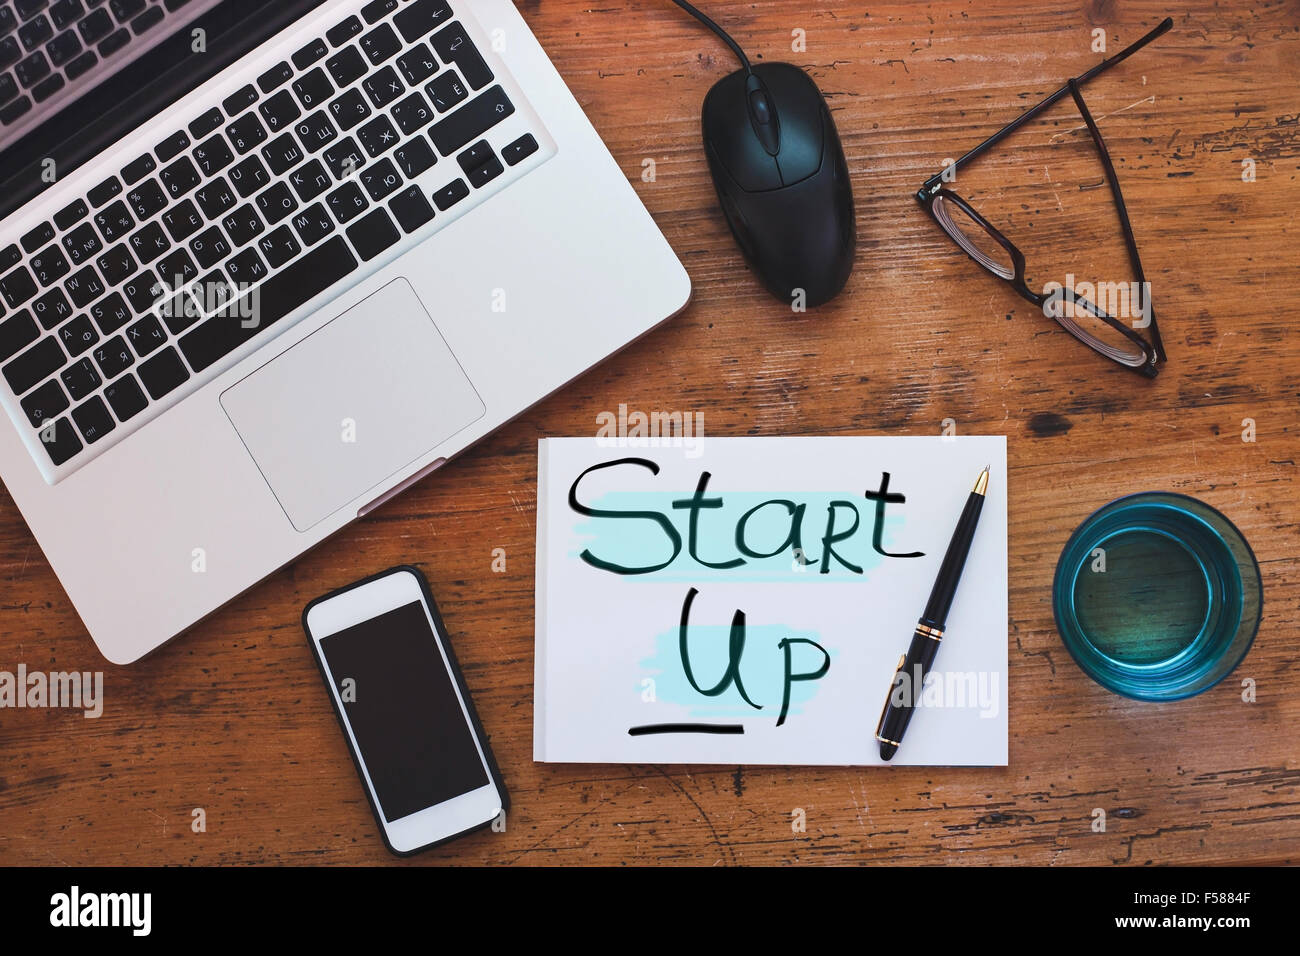 start up concept - Stock Image